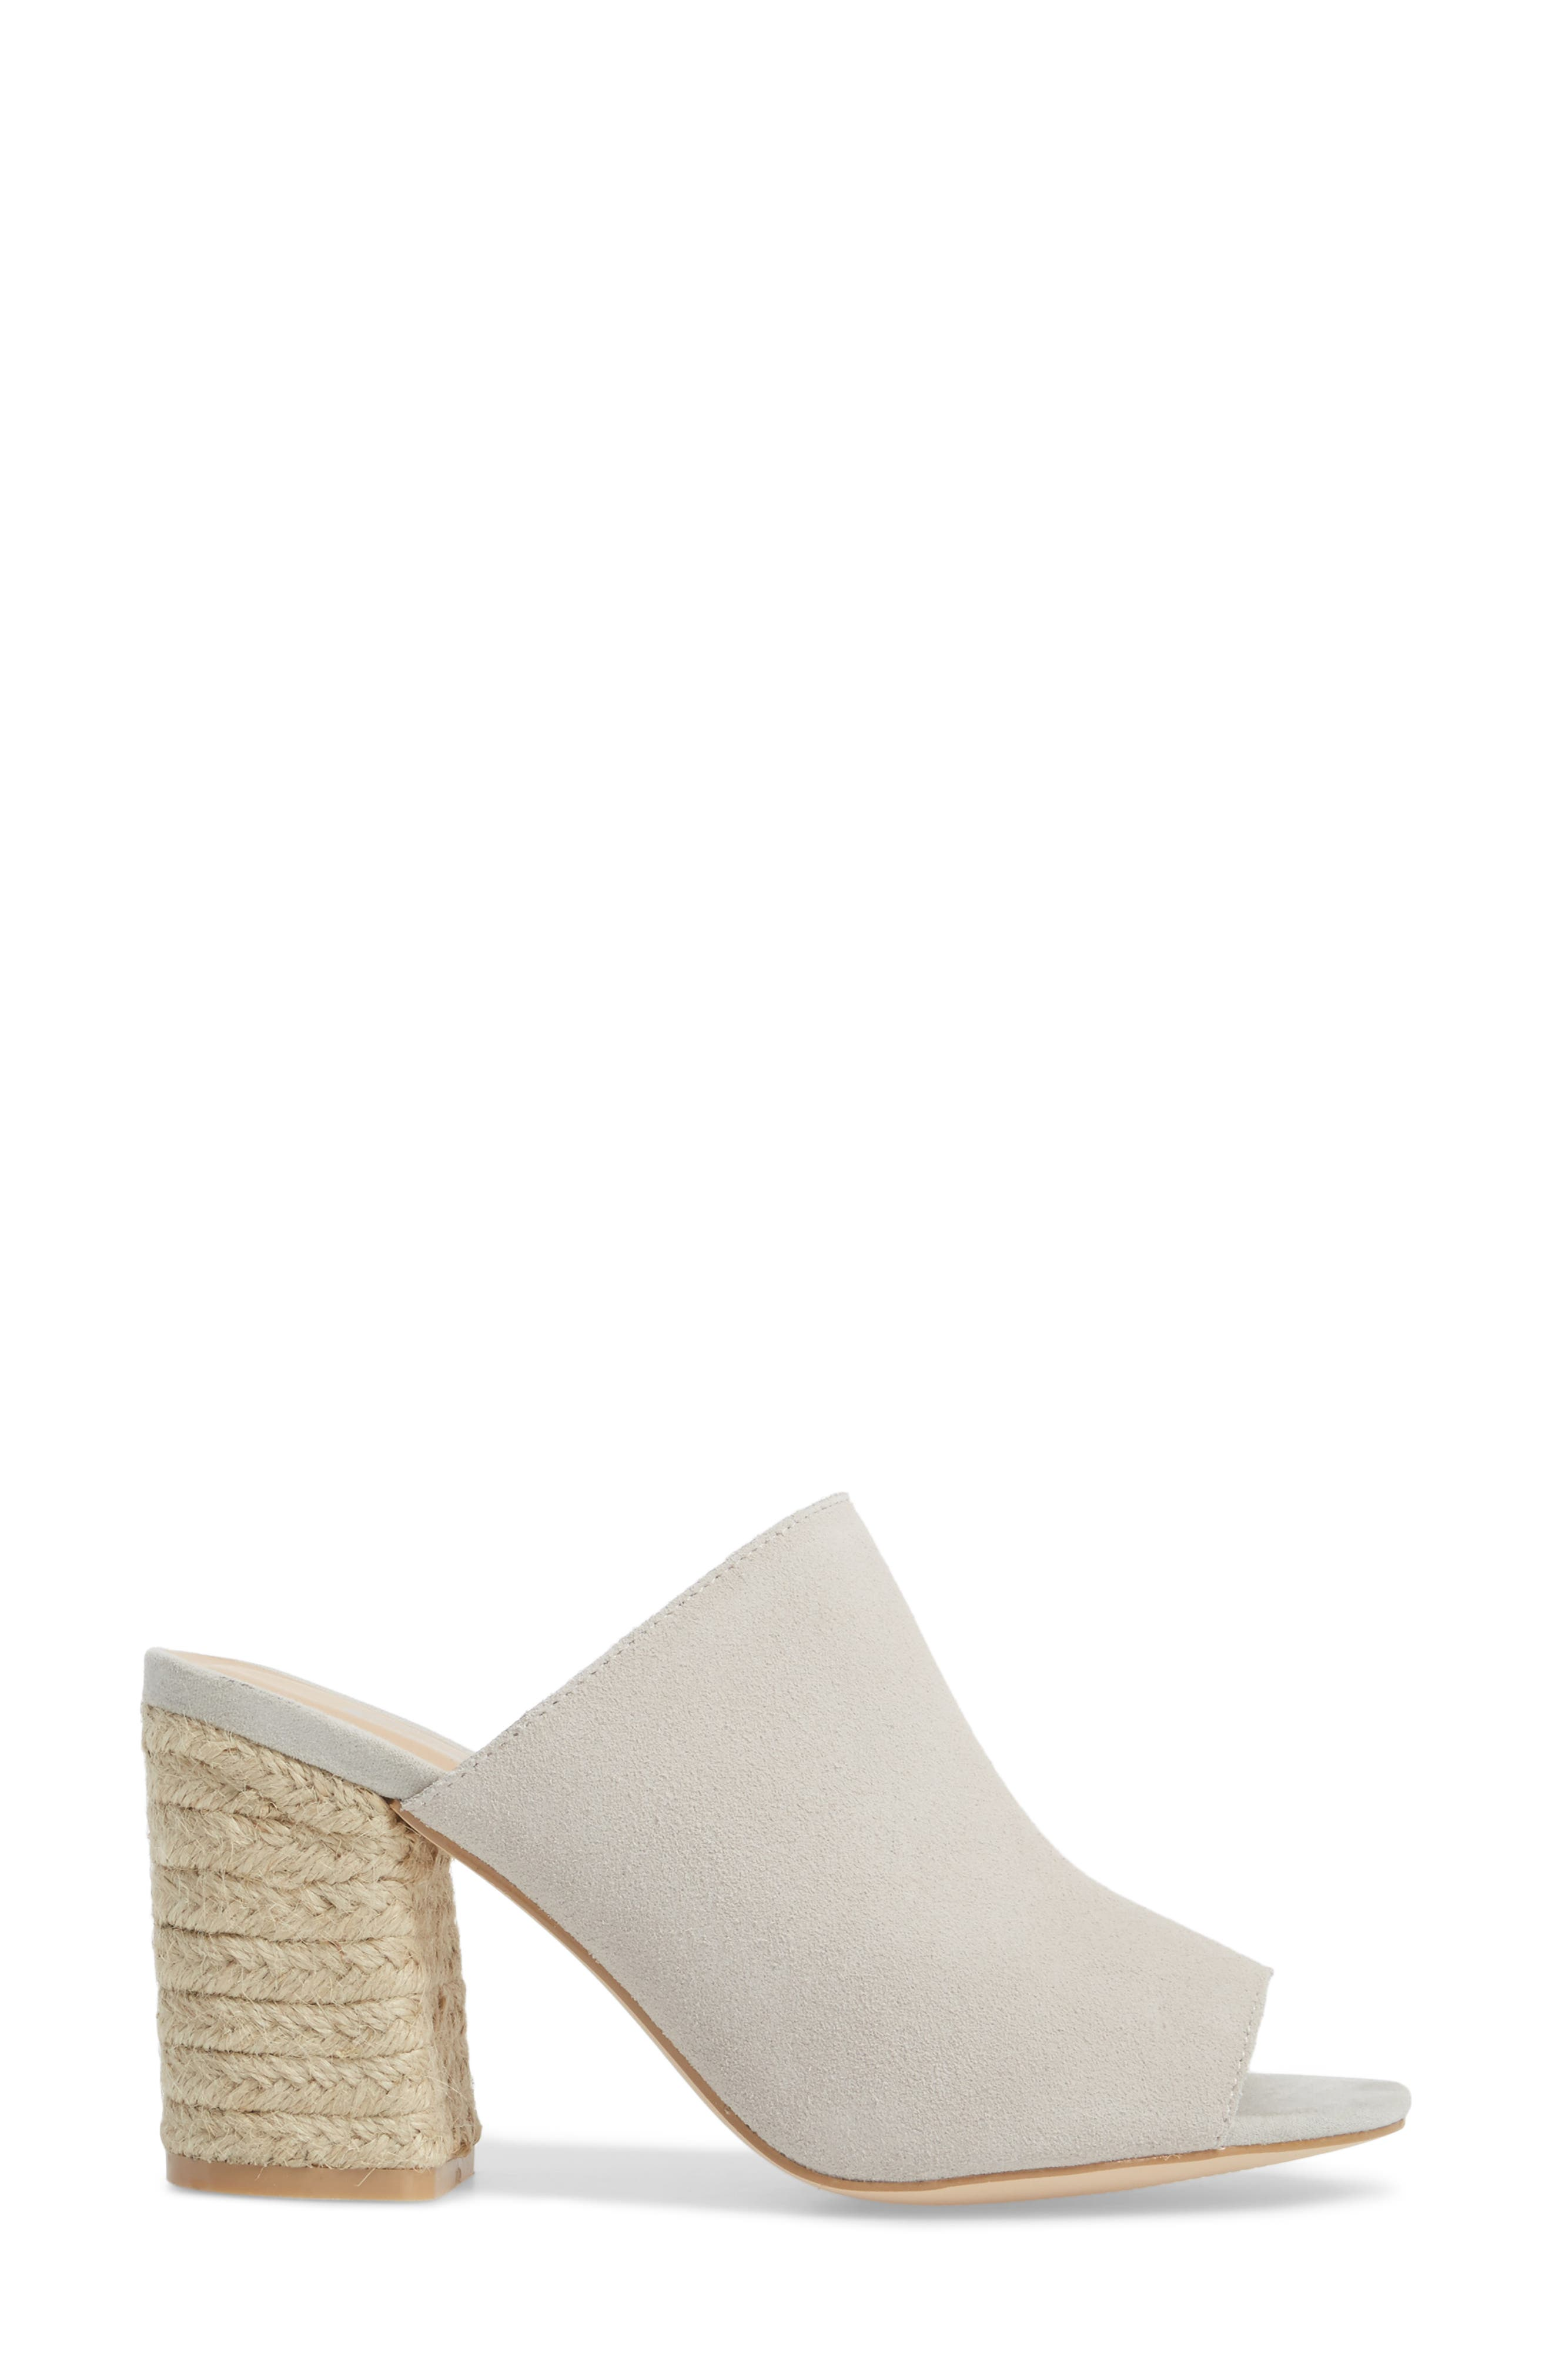 Helena Sandal,                             Alternate thumbnail 3, color,                             Ice Suede/ Leather